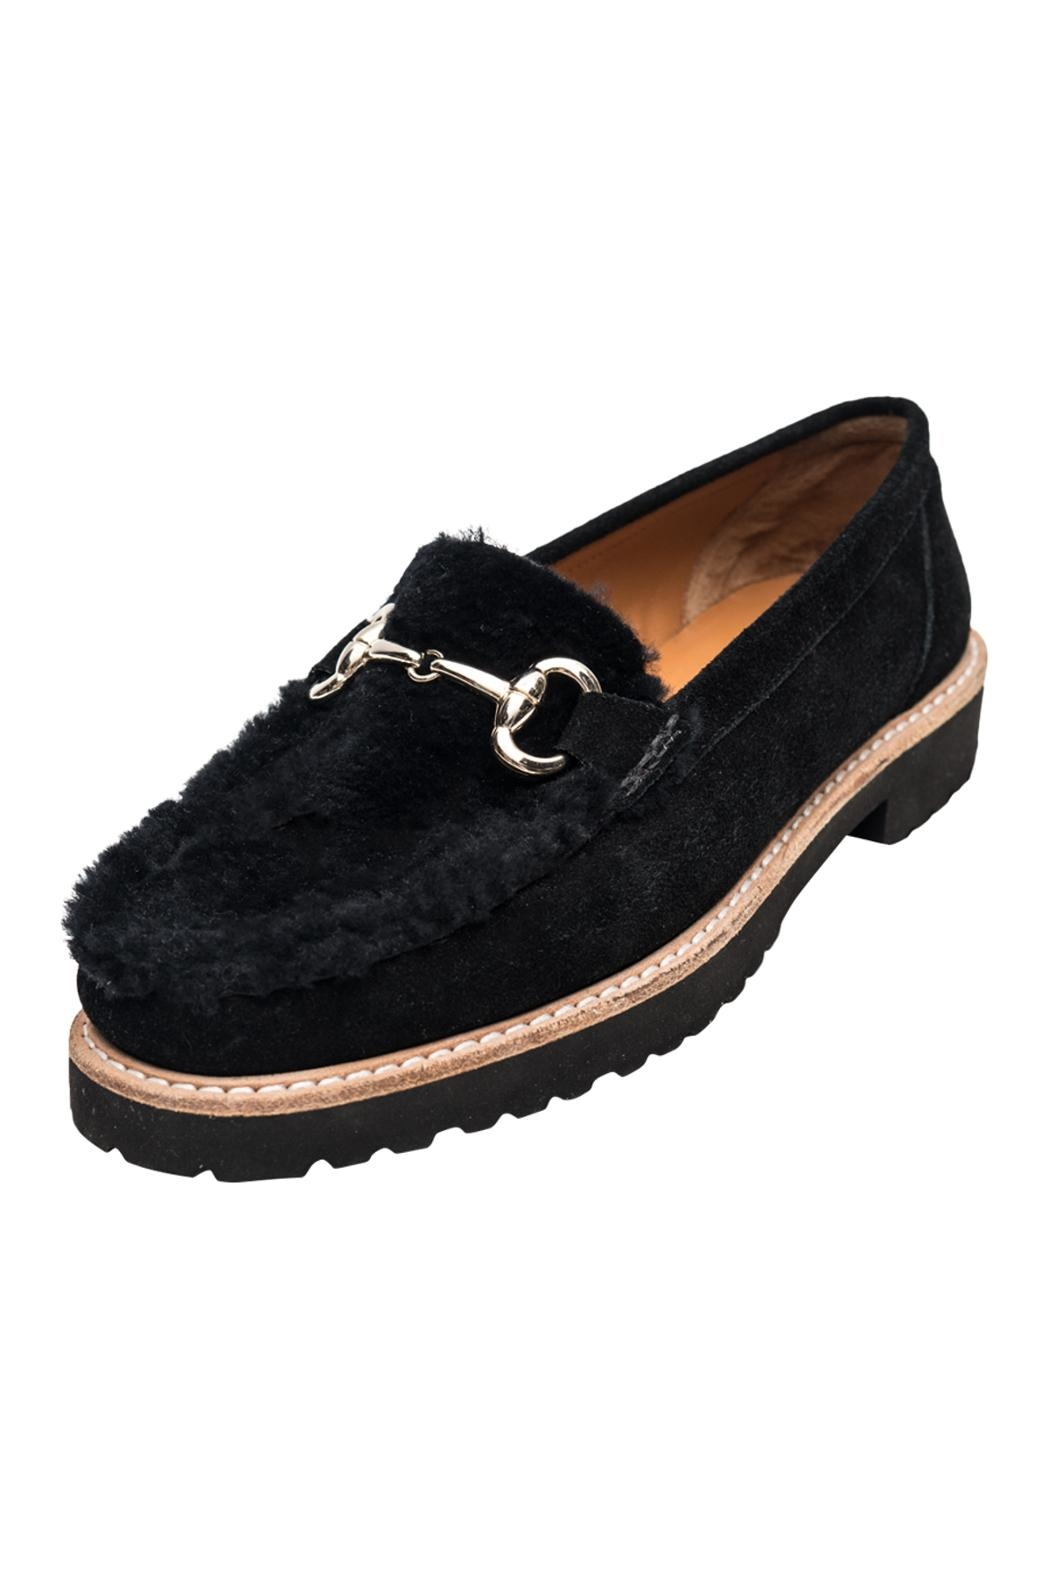 Andre Assous Black Shearling Loafer - Main Image